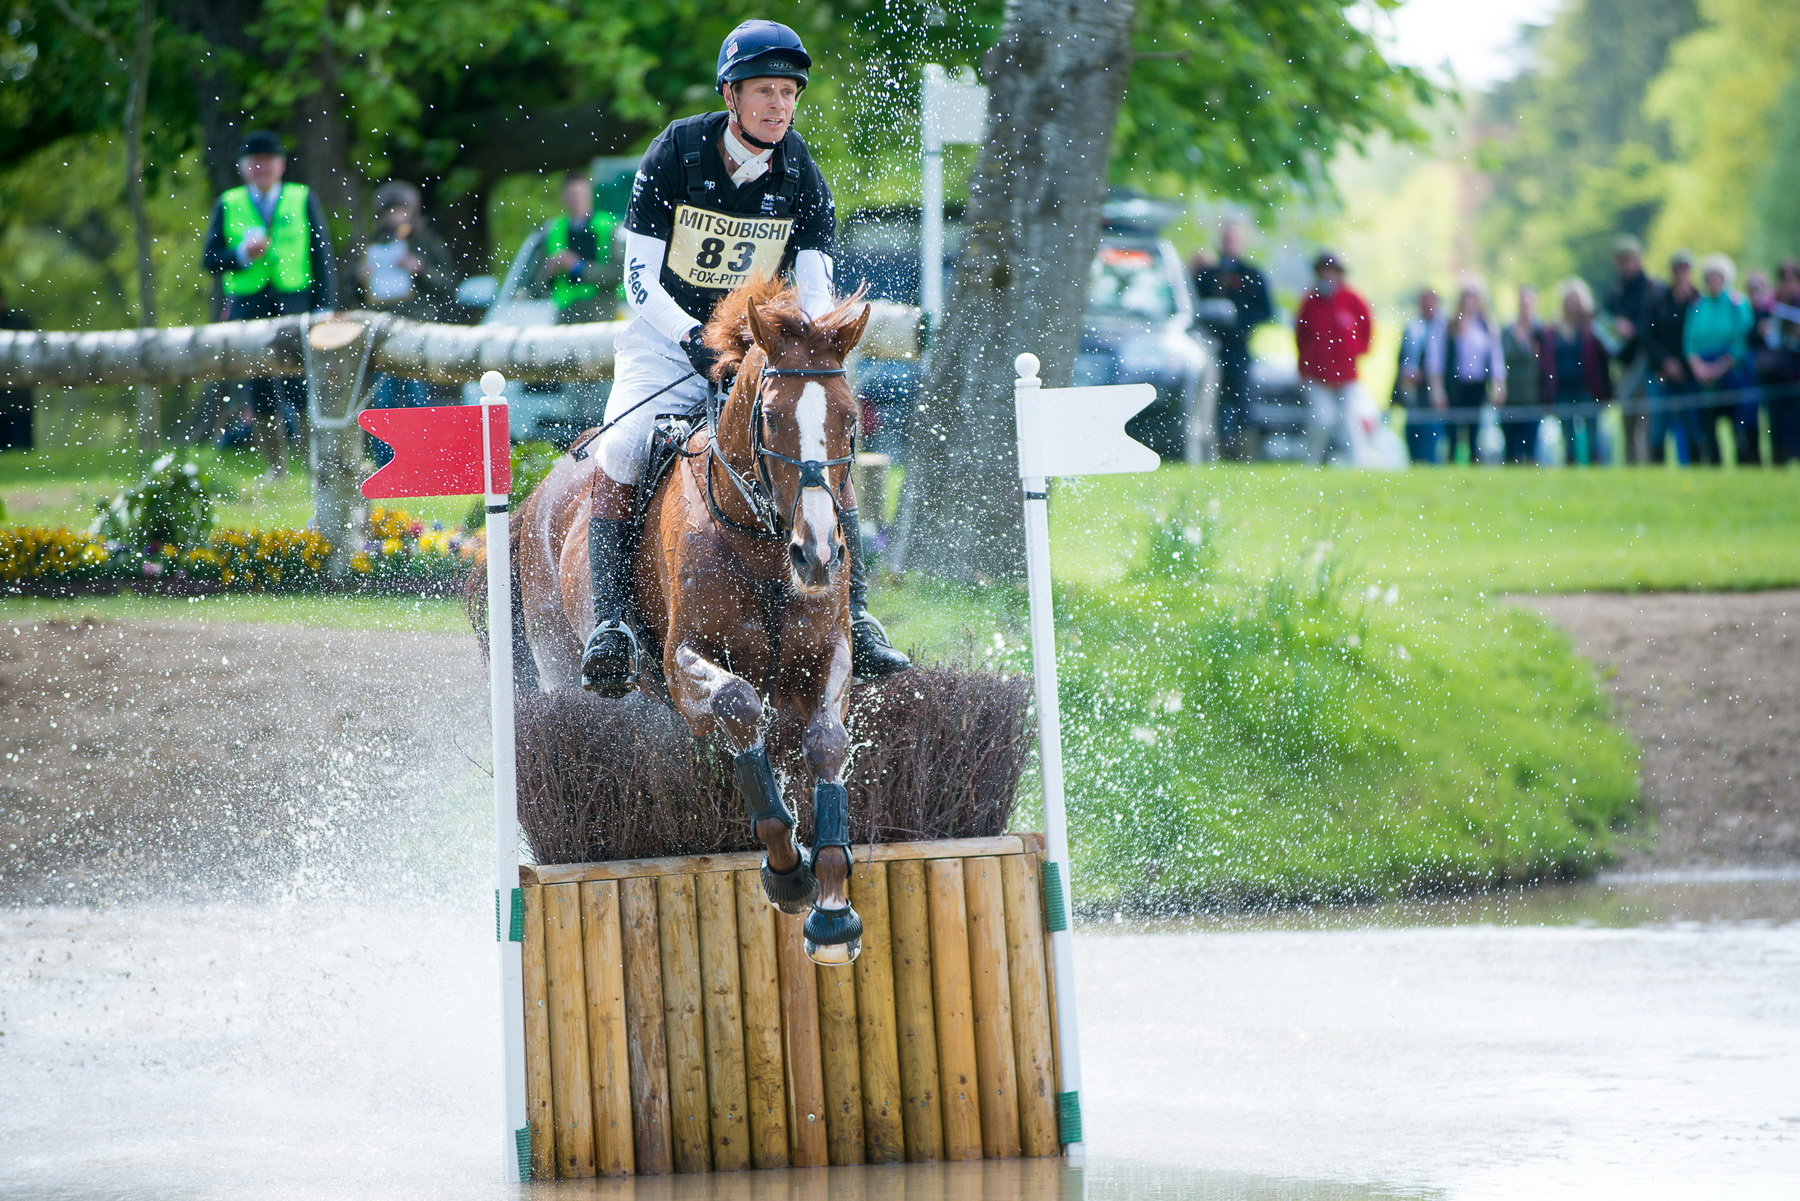 William Fox-Pitt (GBR) & Chilli Morning - Cross Country - Mitsubishi Motors Badminton Horse Trials - CCI4* - Badminton, Gloucestershire, United Kingdom - 09 May 2015